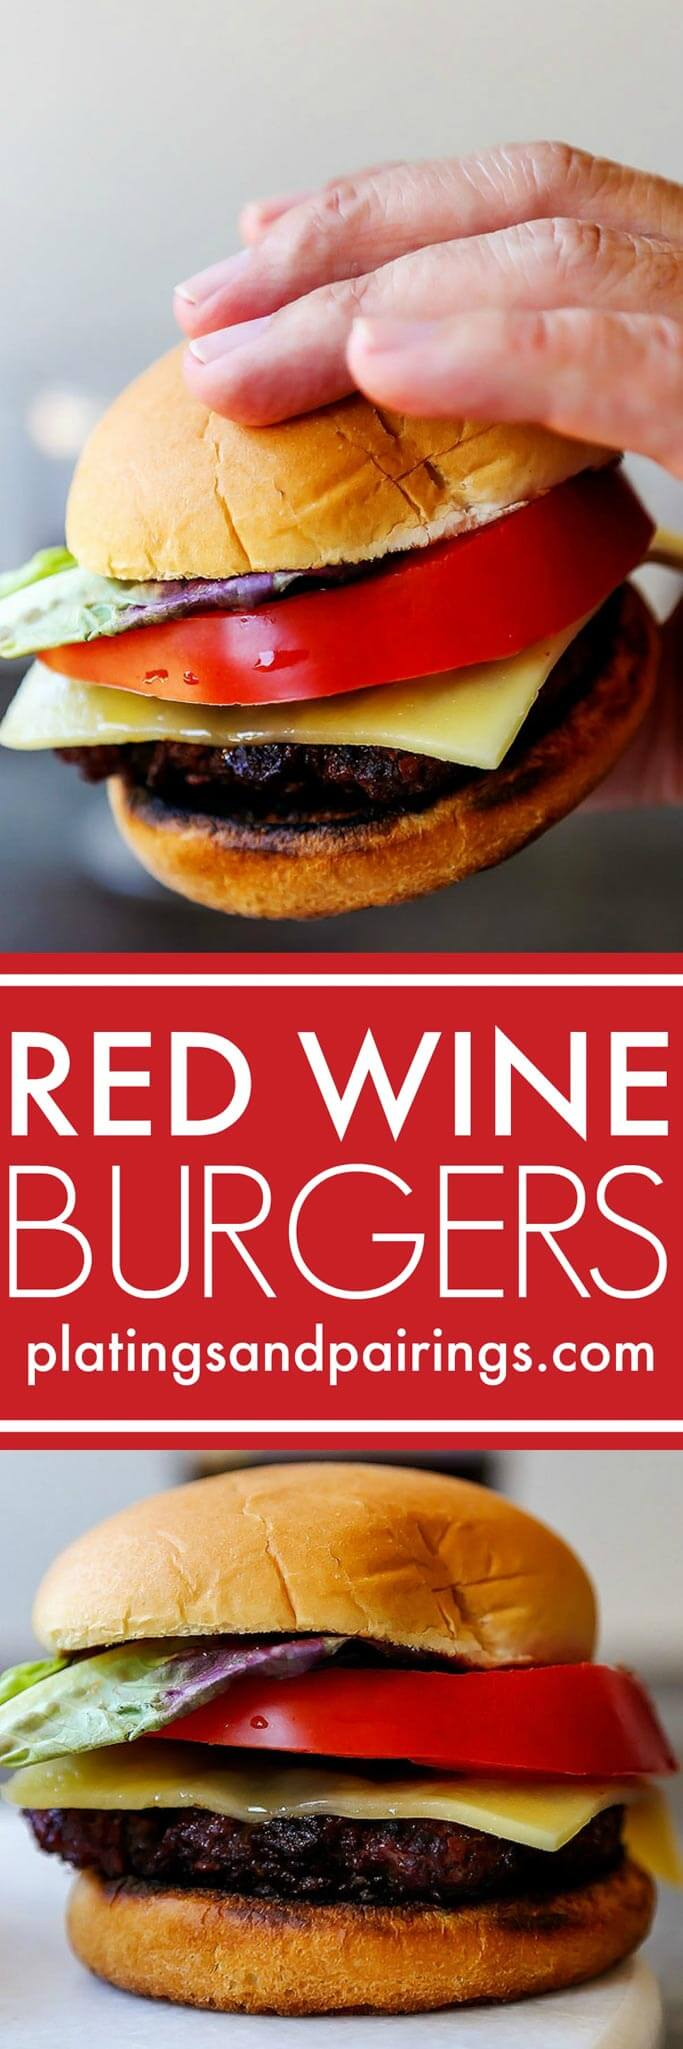 These Red Wine Burgers are decadent treat for your summer BBQ. Seasoned with a red wine-shallot reduction, topped with melted cheese and served simply with a thick slice of tomato and lettuce. | platingsandpairings.com